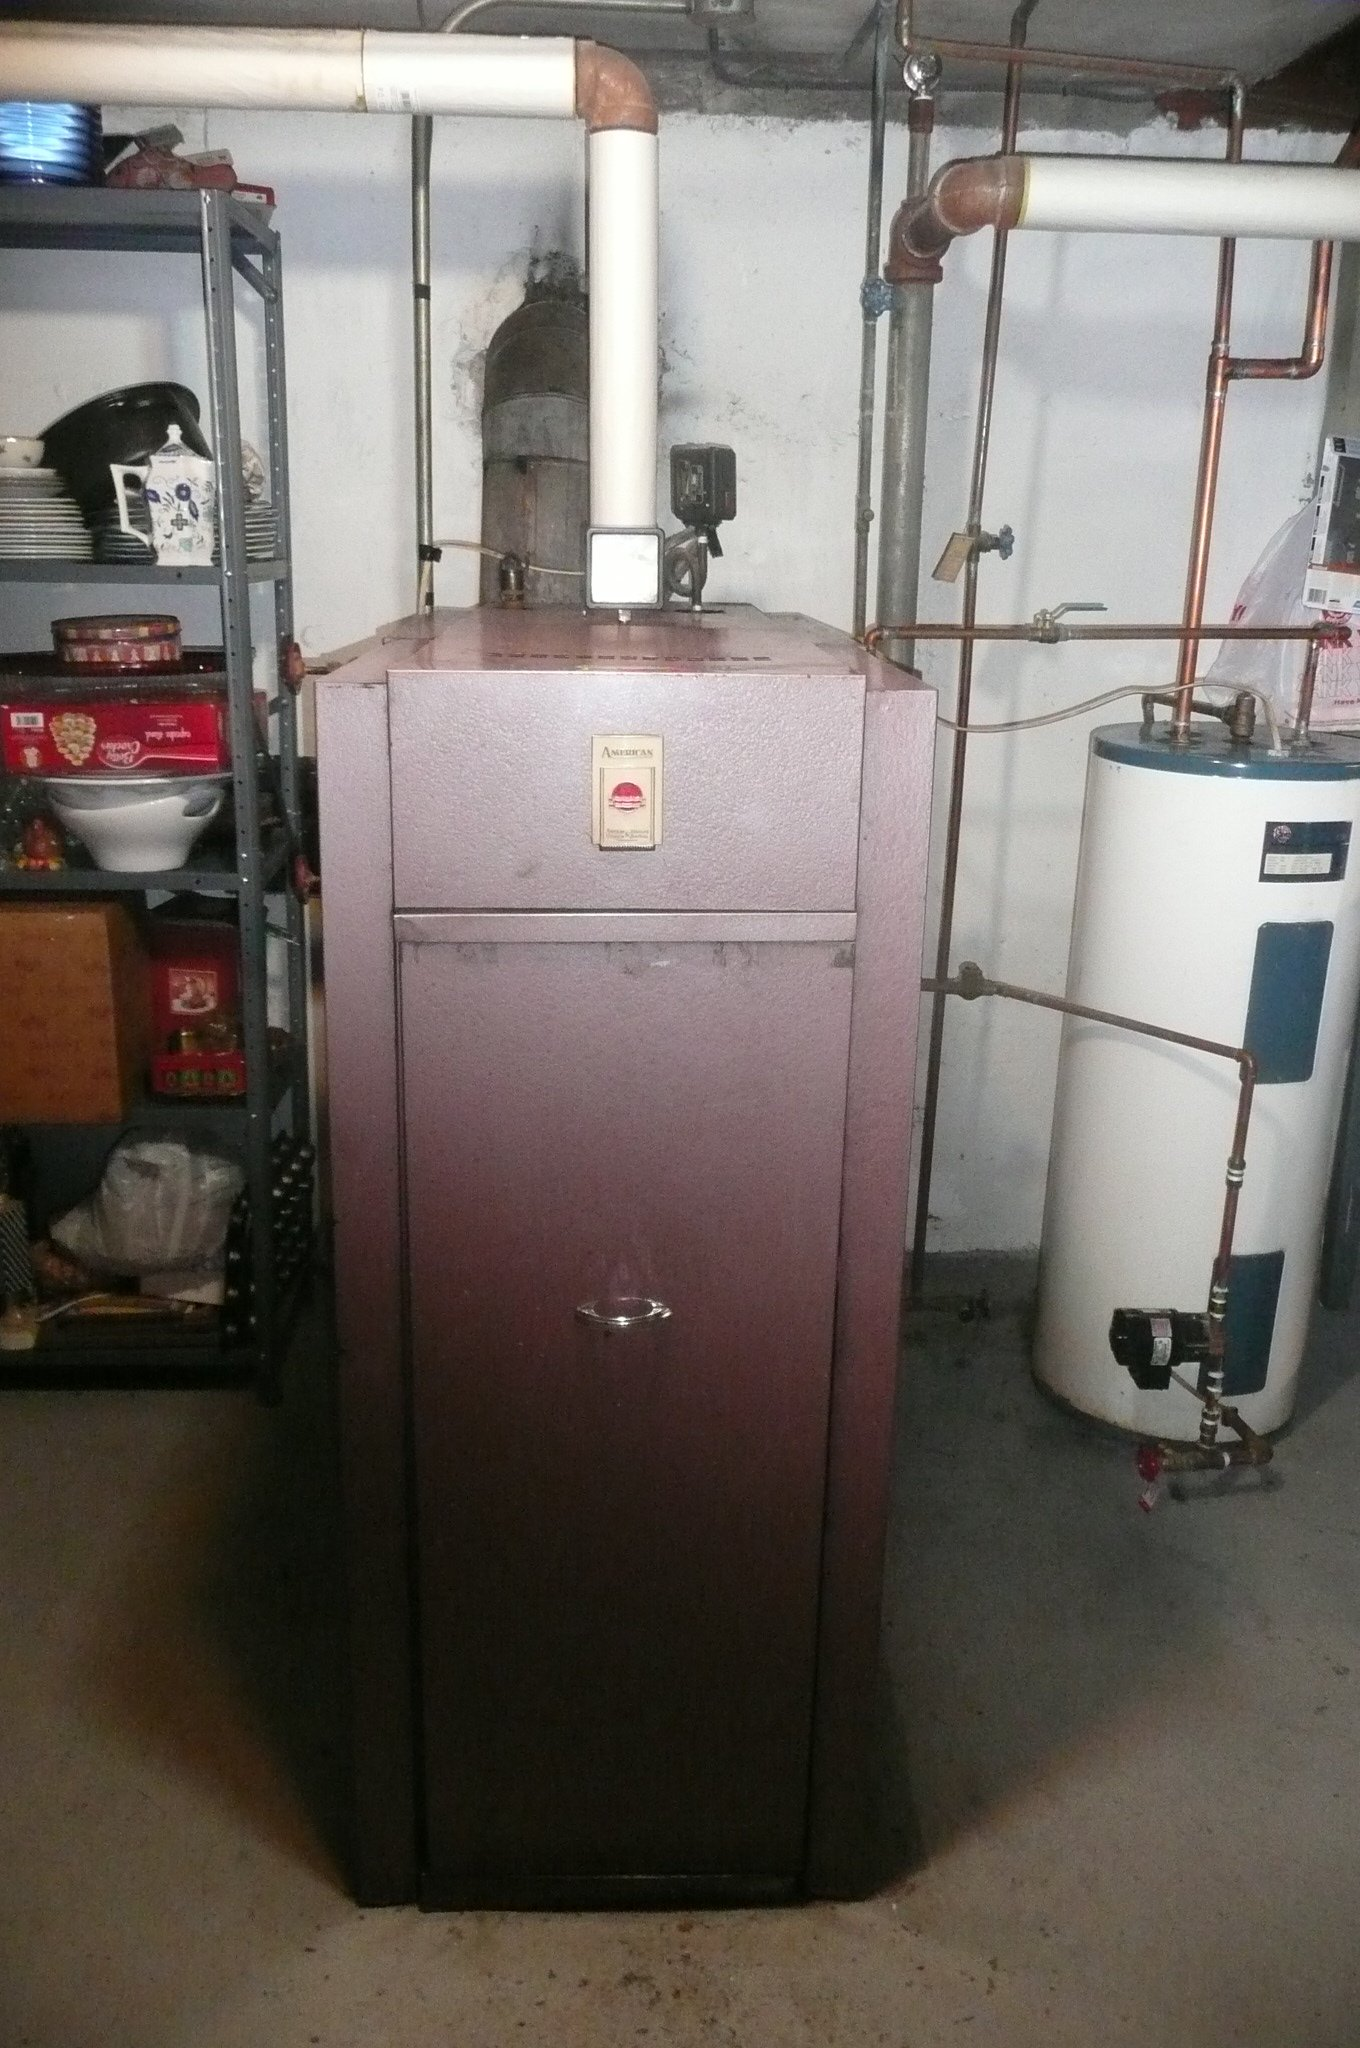 70 Yr Old Boiler I Think Its Time Heating Help The Wall